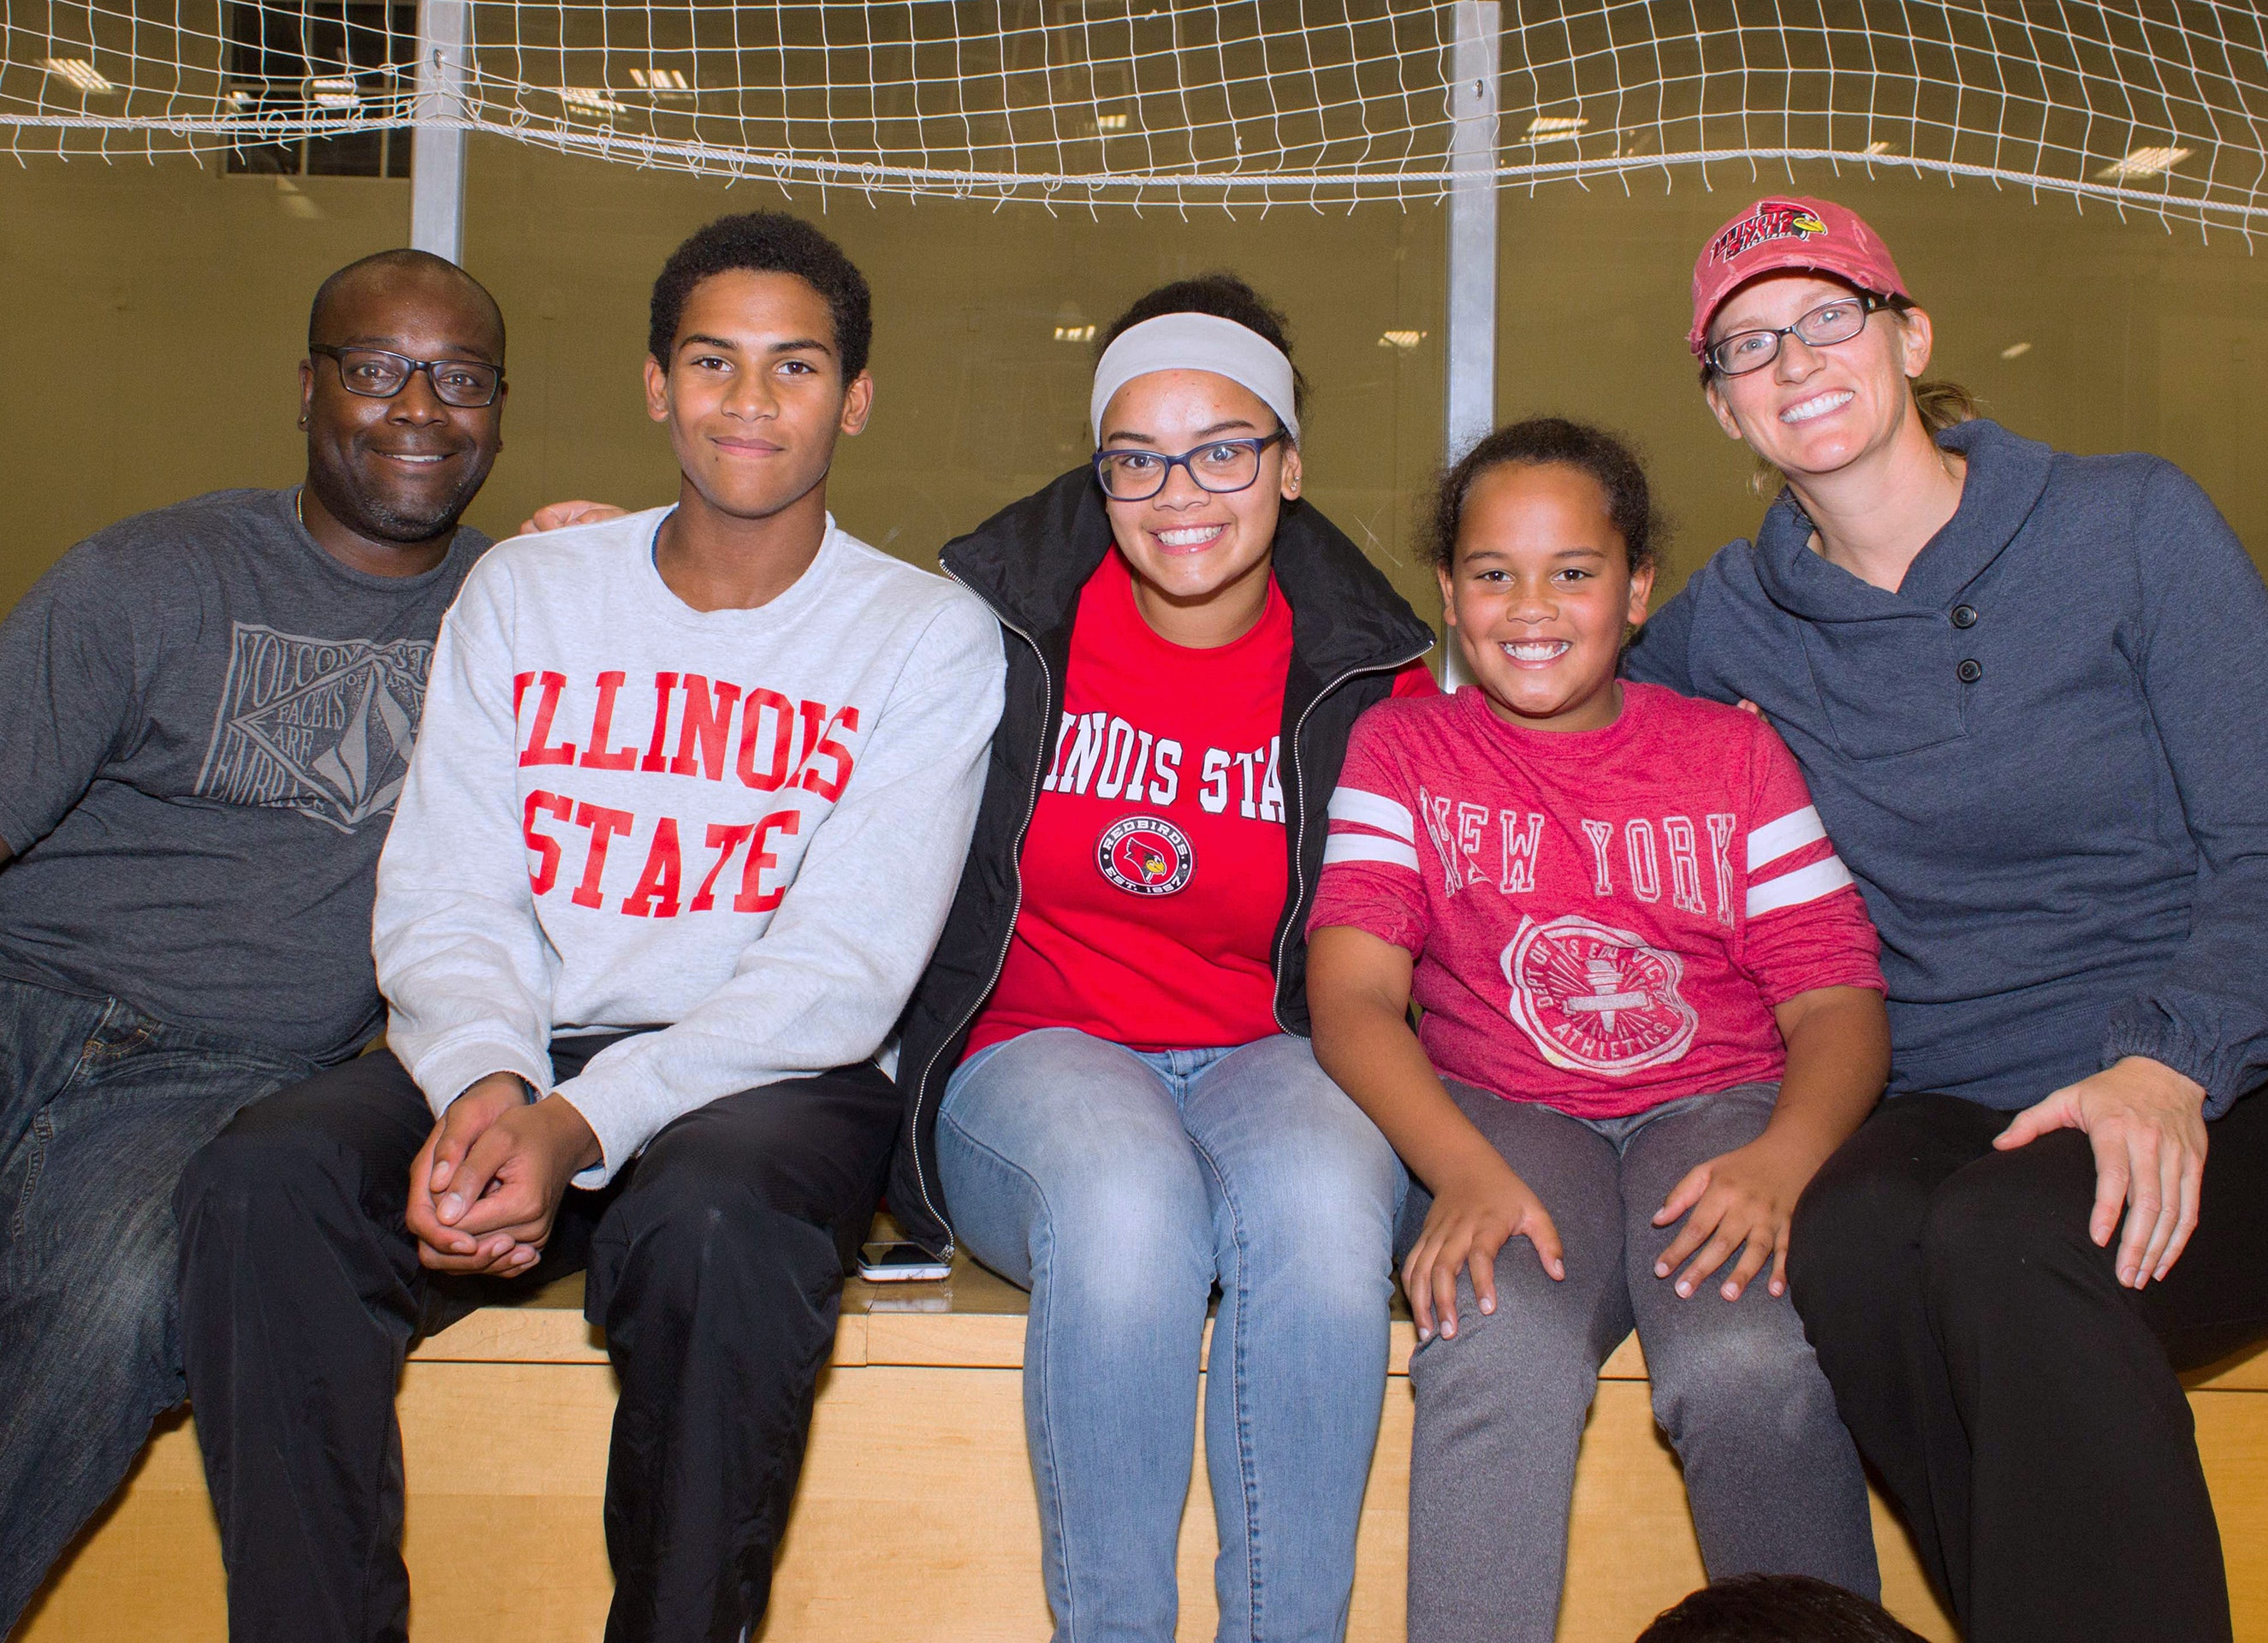 Family of five wearing Illinois State gear.